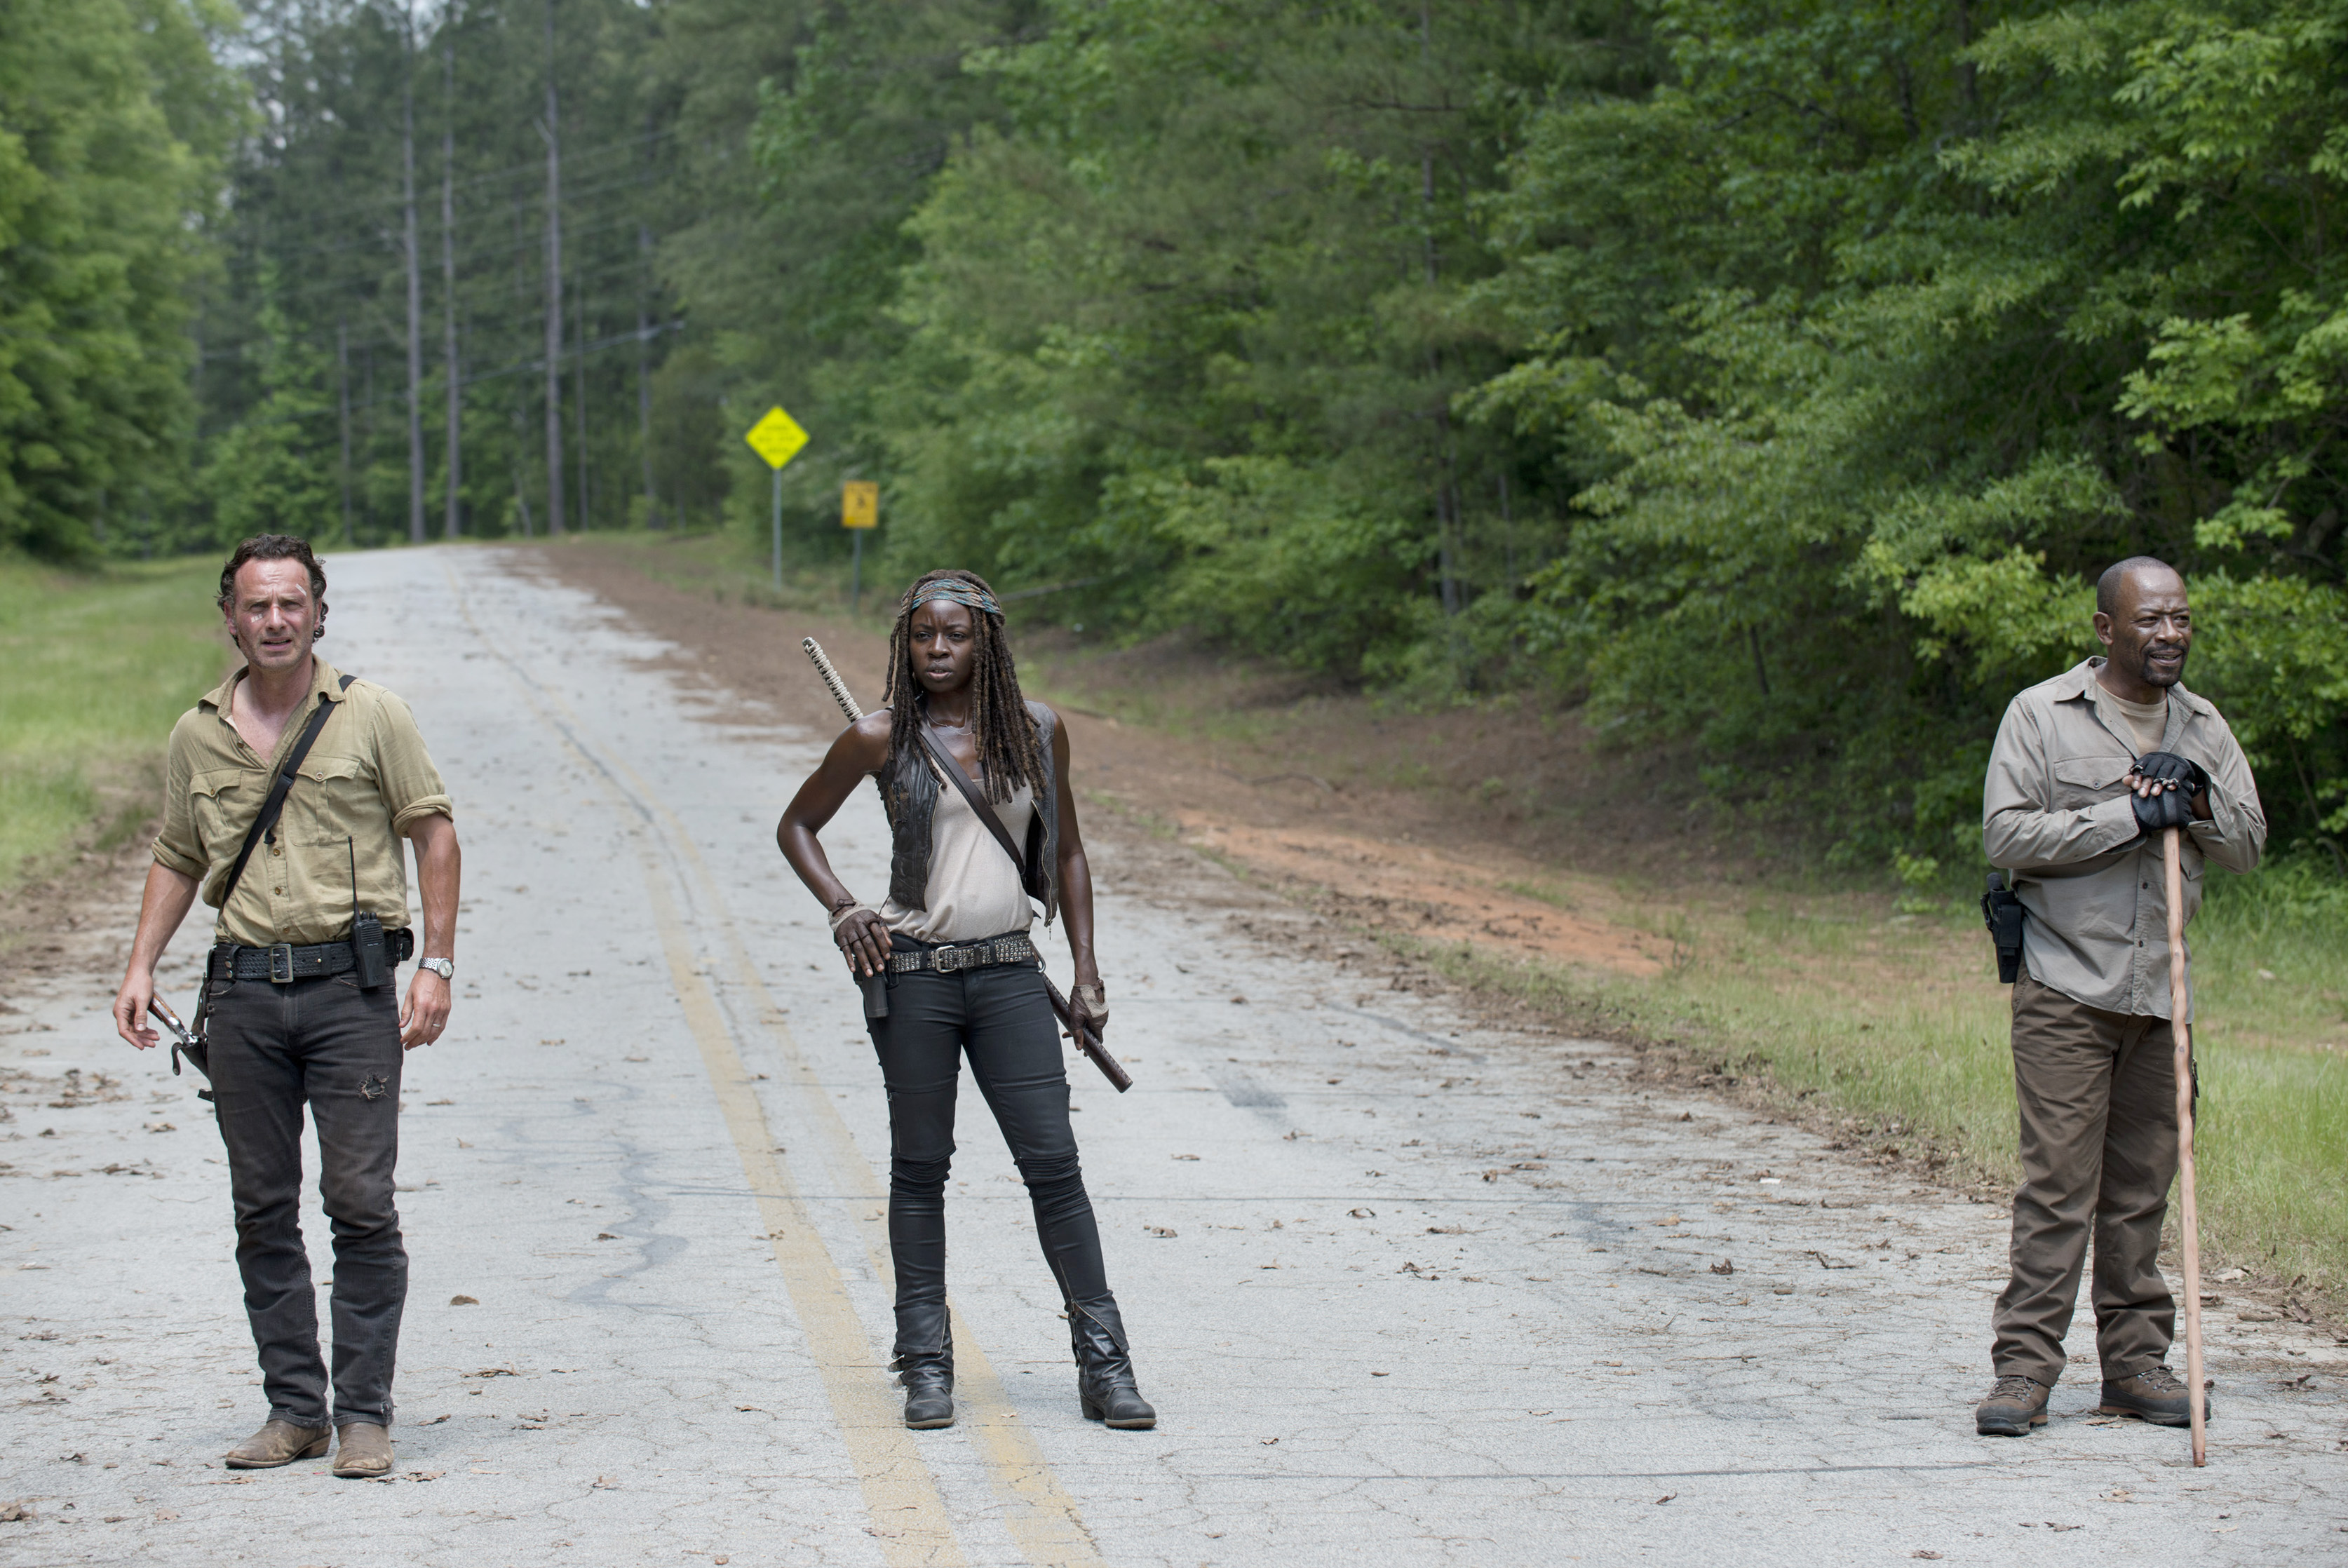 Andrew Lincoln / Rick Grimes, Danai Gurira / Michonne et Lennie James / Morgan Jones - The Walking Dead Saison 6 Épisode 1 - Crédit photo : Gene Page/AMC